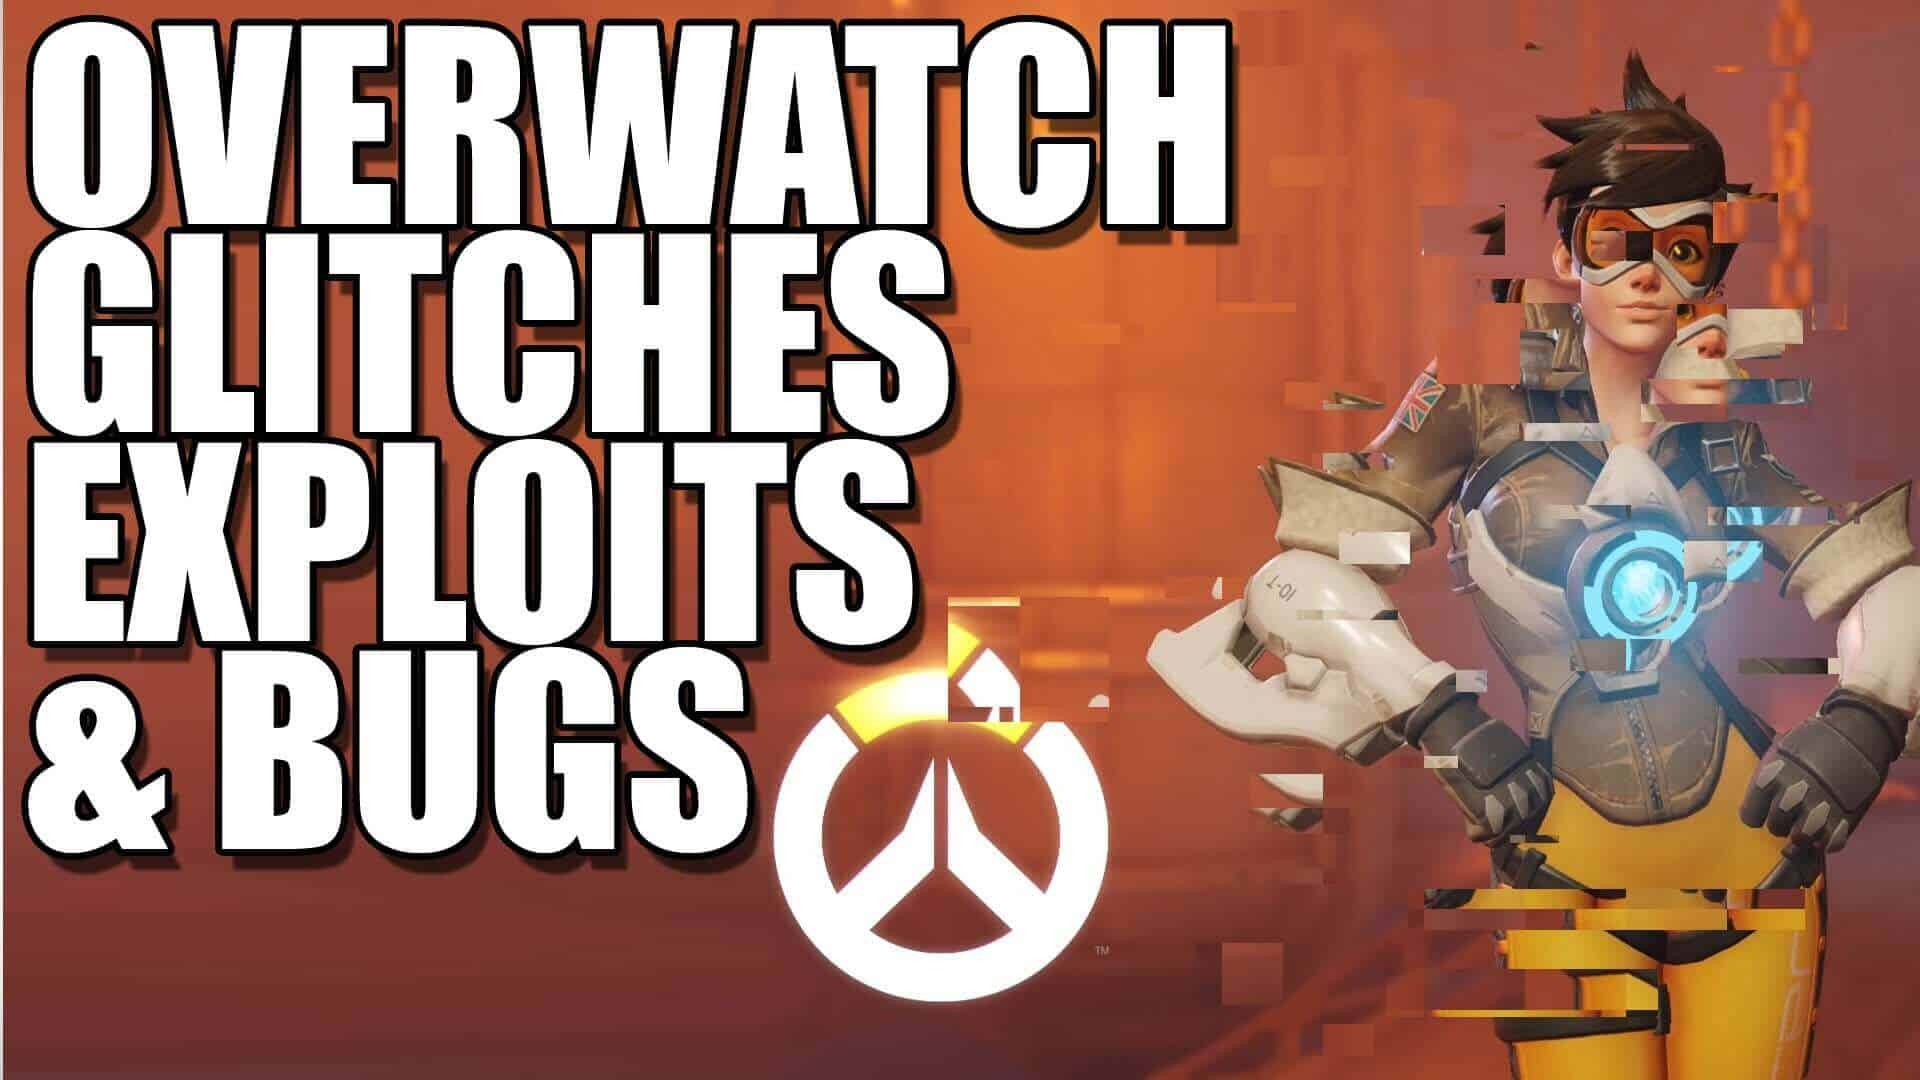 Overwatch Aimbot, Hacks & Cheats - IWantCheats net